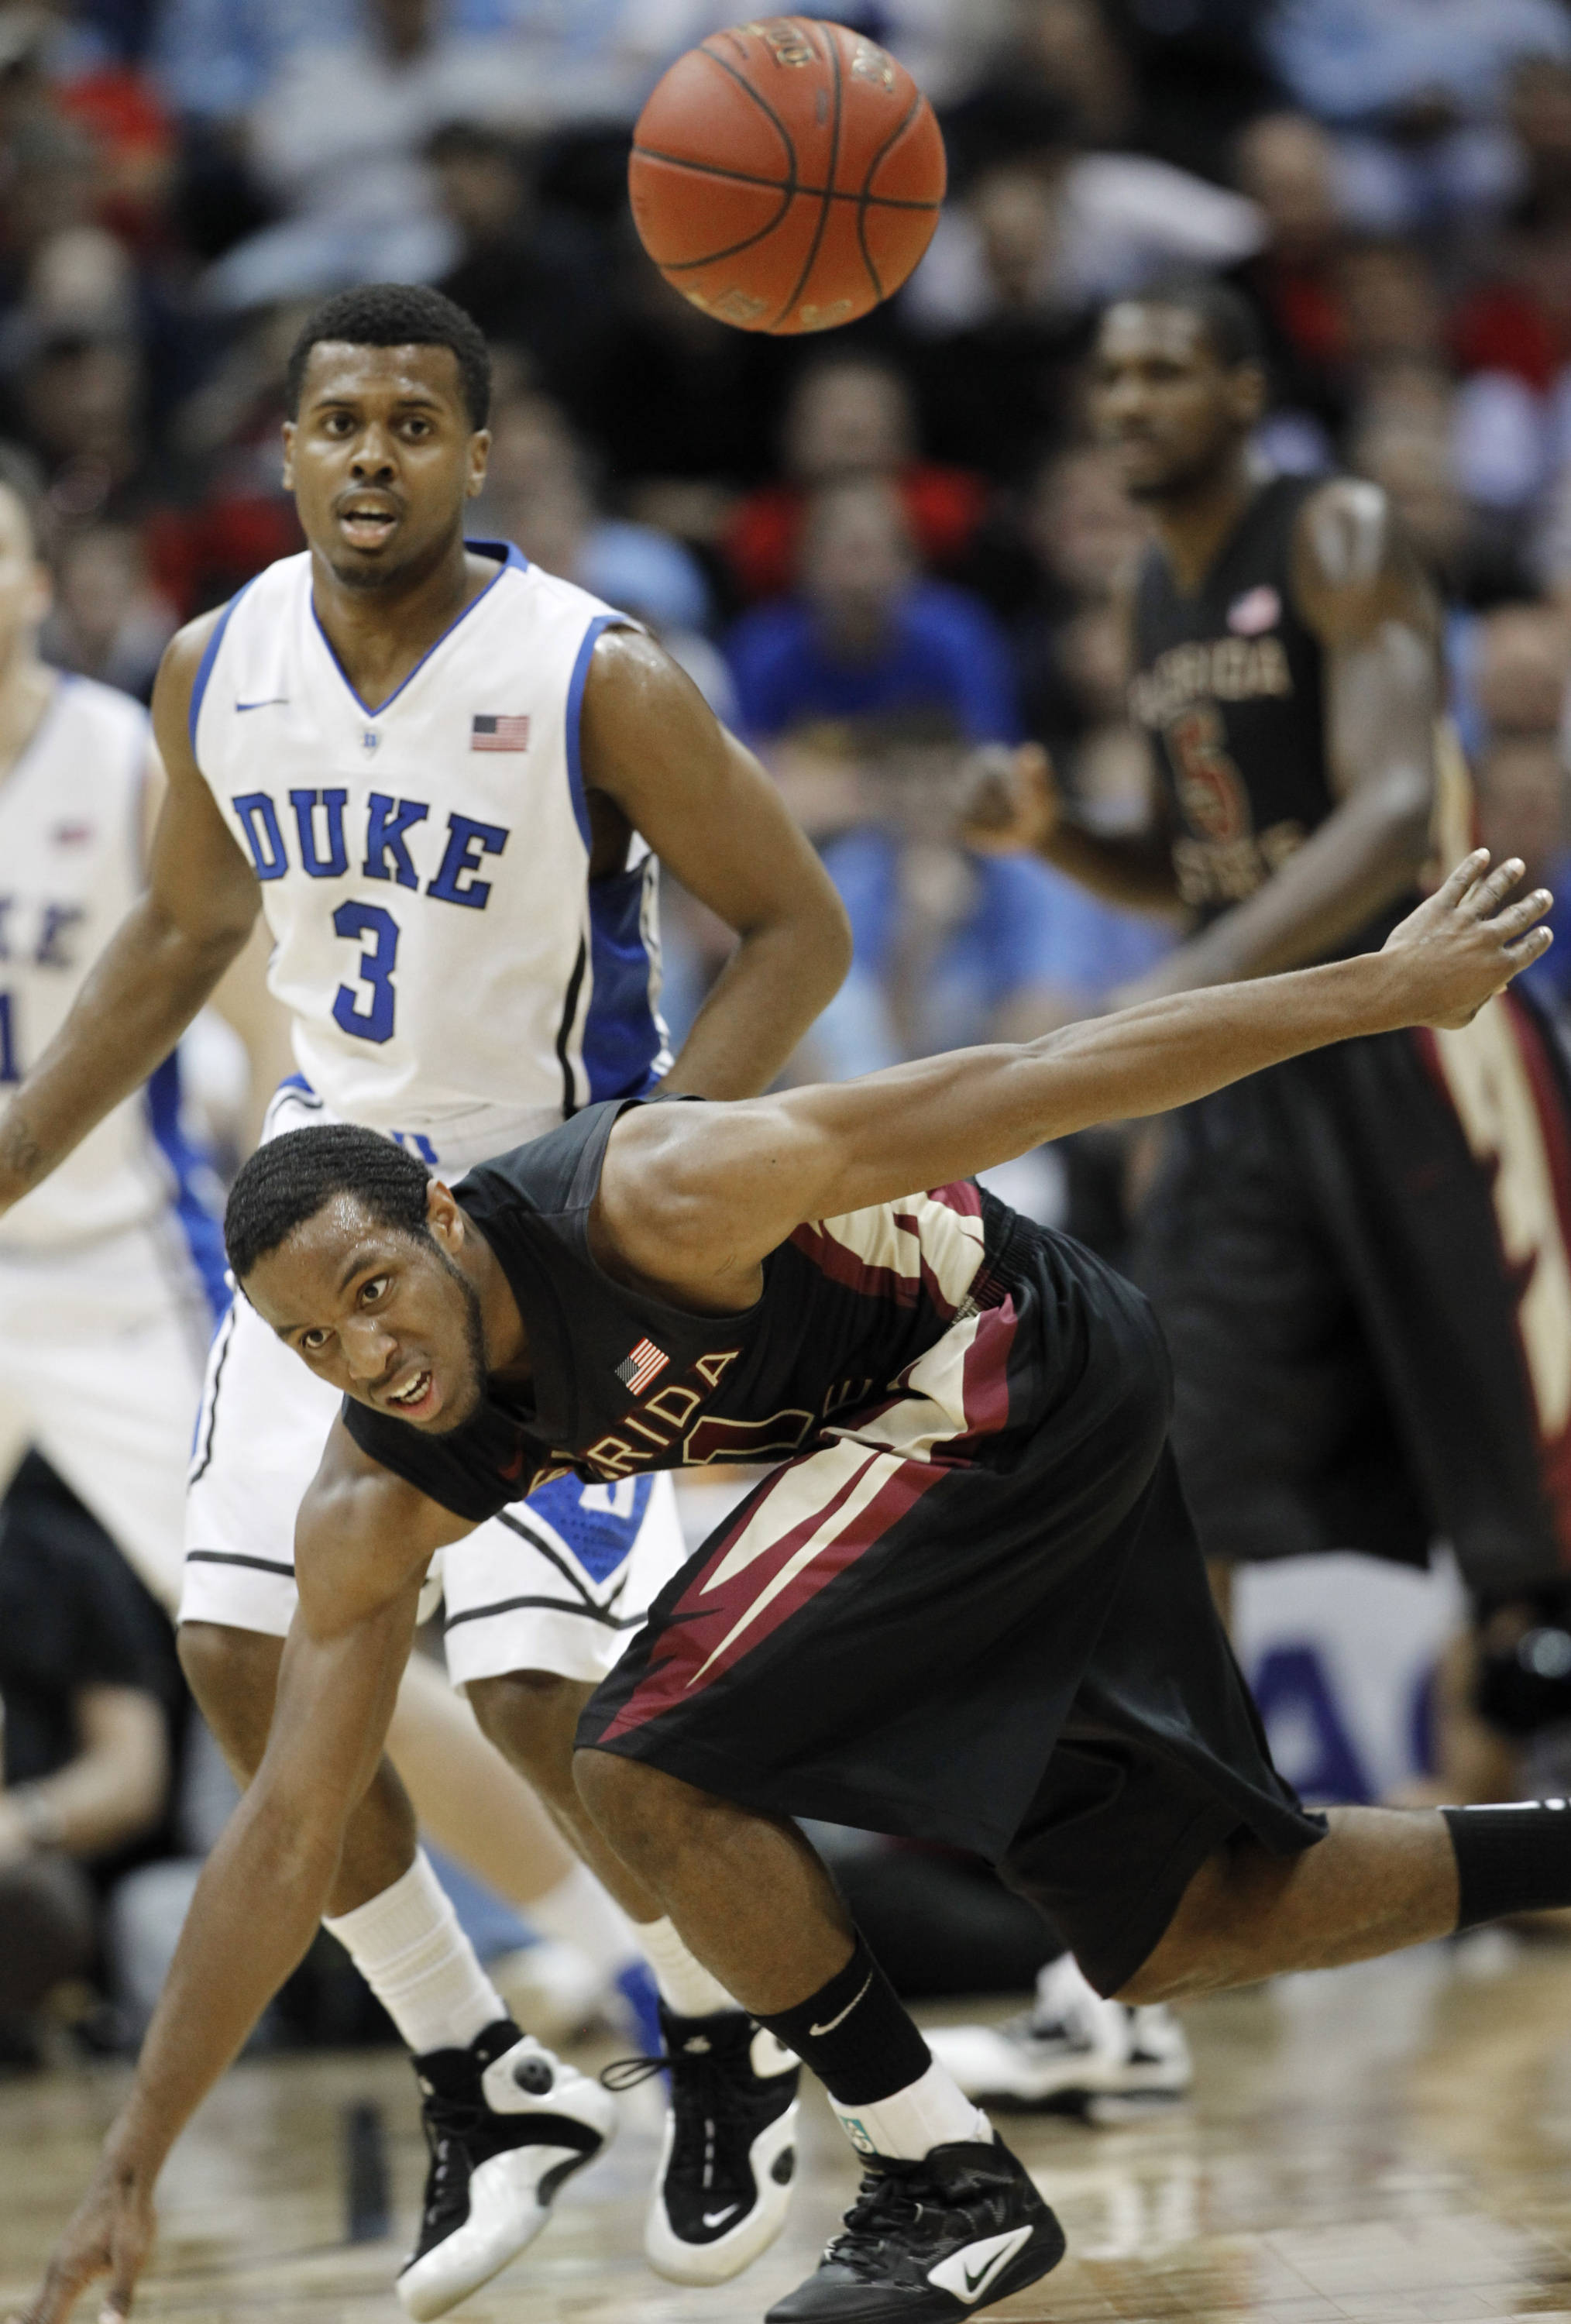 Florida State guard Michael Snaer (21) loses his footing as he tries to catch a loose ball with Duke guard Tyler Thornton (3) during the first half of an NCAA college basketball game in the semifinals of the Atlantic Coast Conference tournament, Saturday, March 10, 2012, in Atlanta. (AP Photo/John Bazemore)